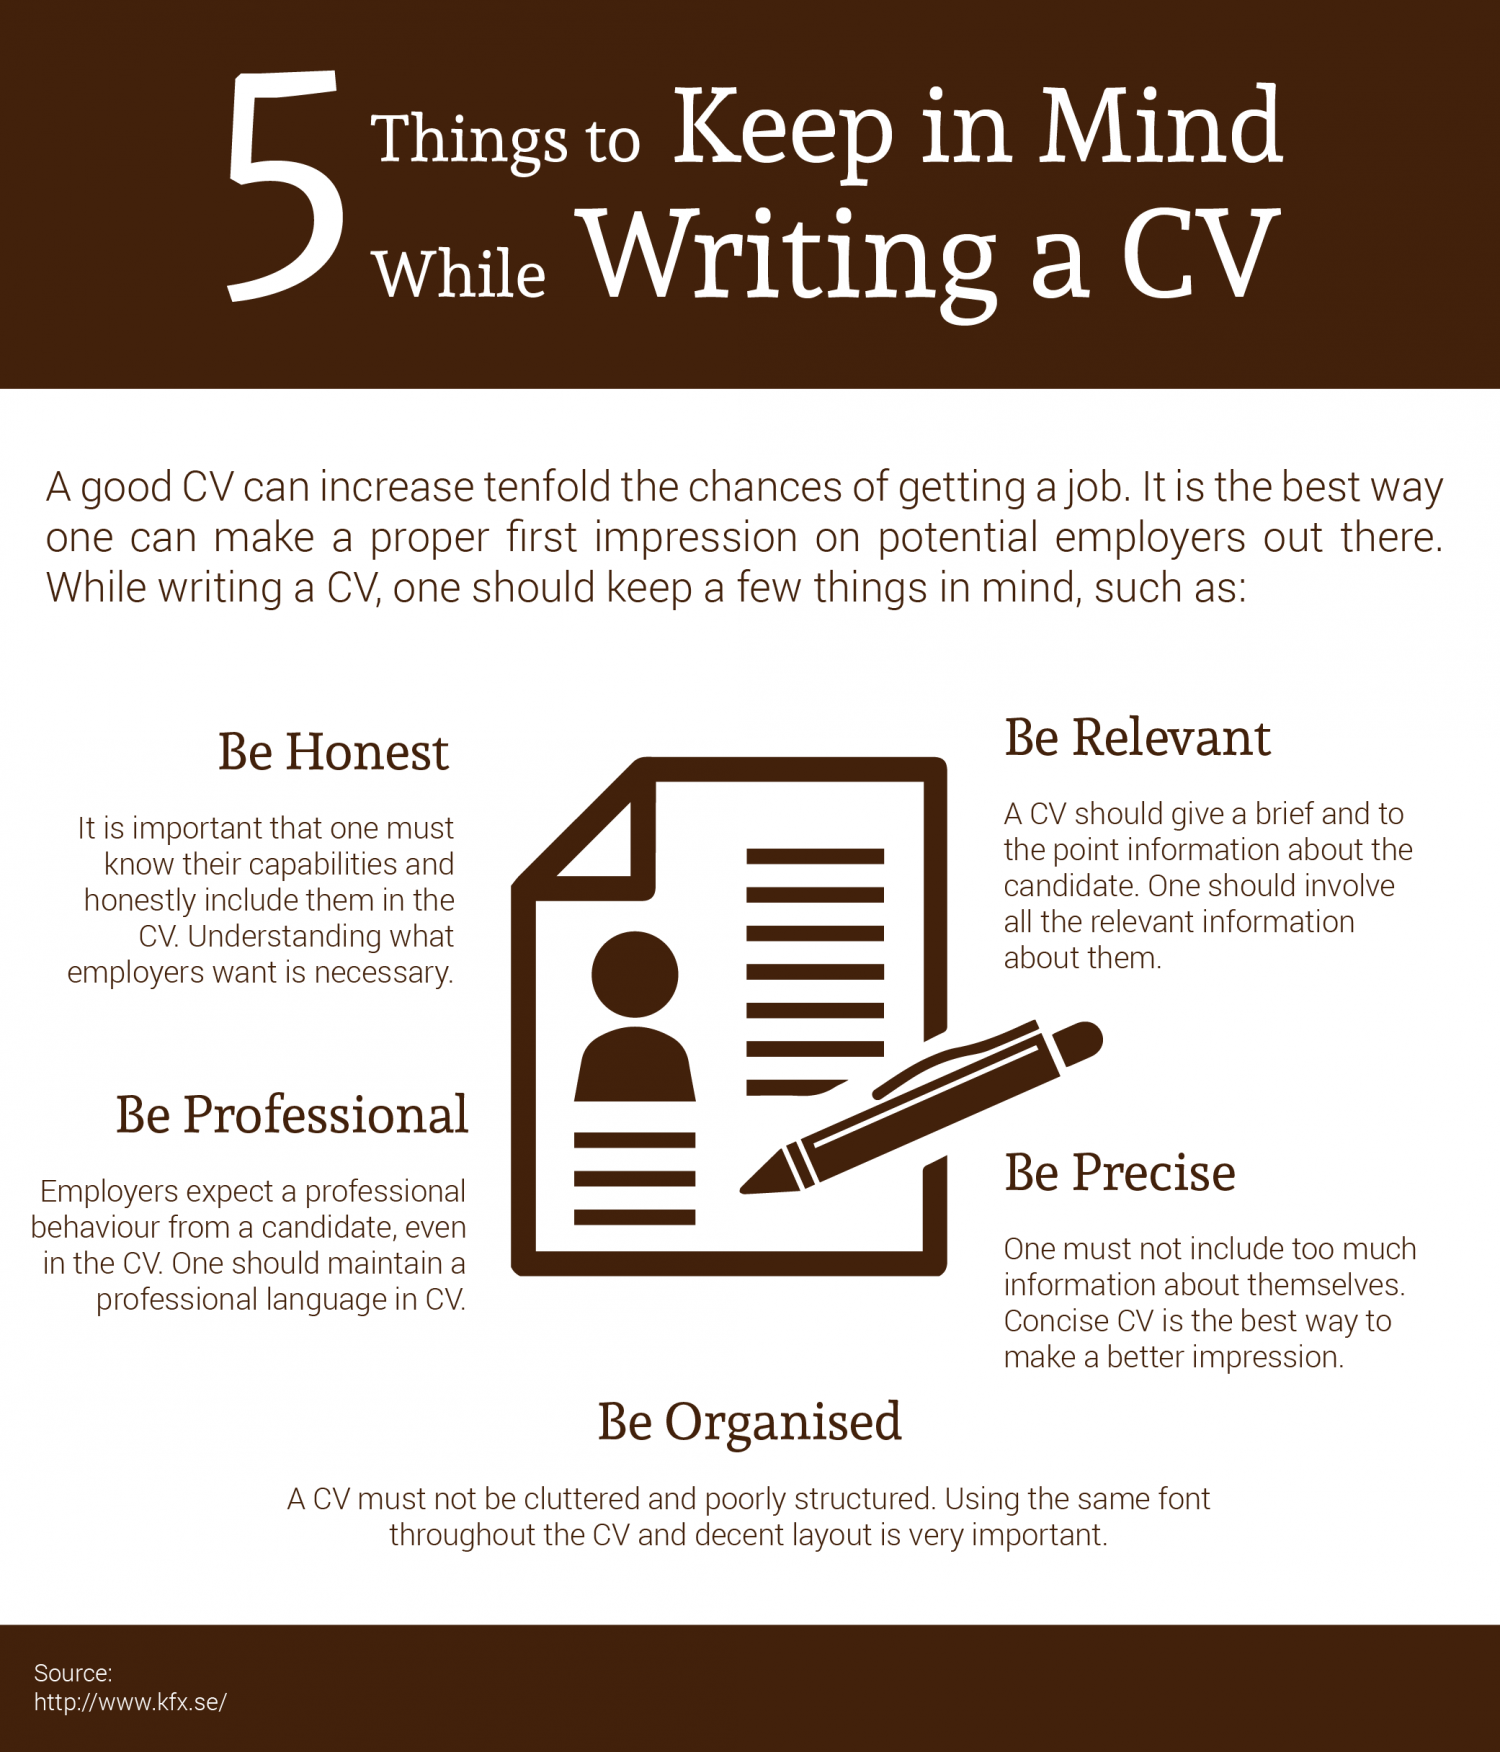 5 Things to Keep in Mind While Writing a CV Infographic